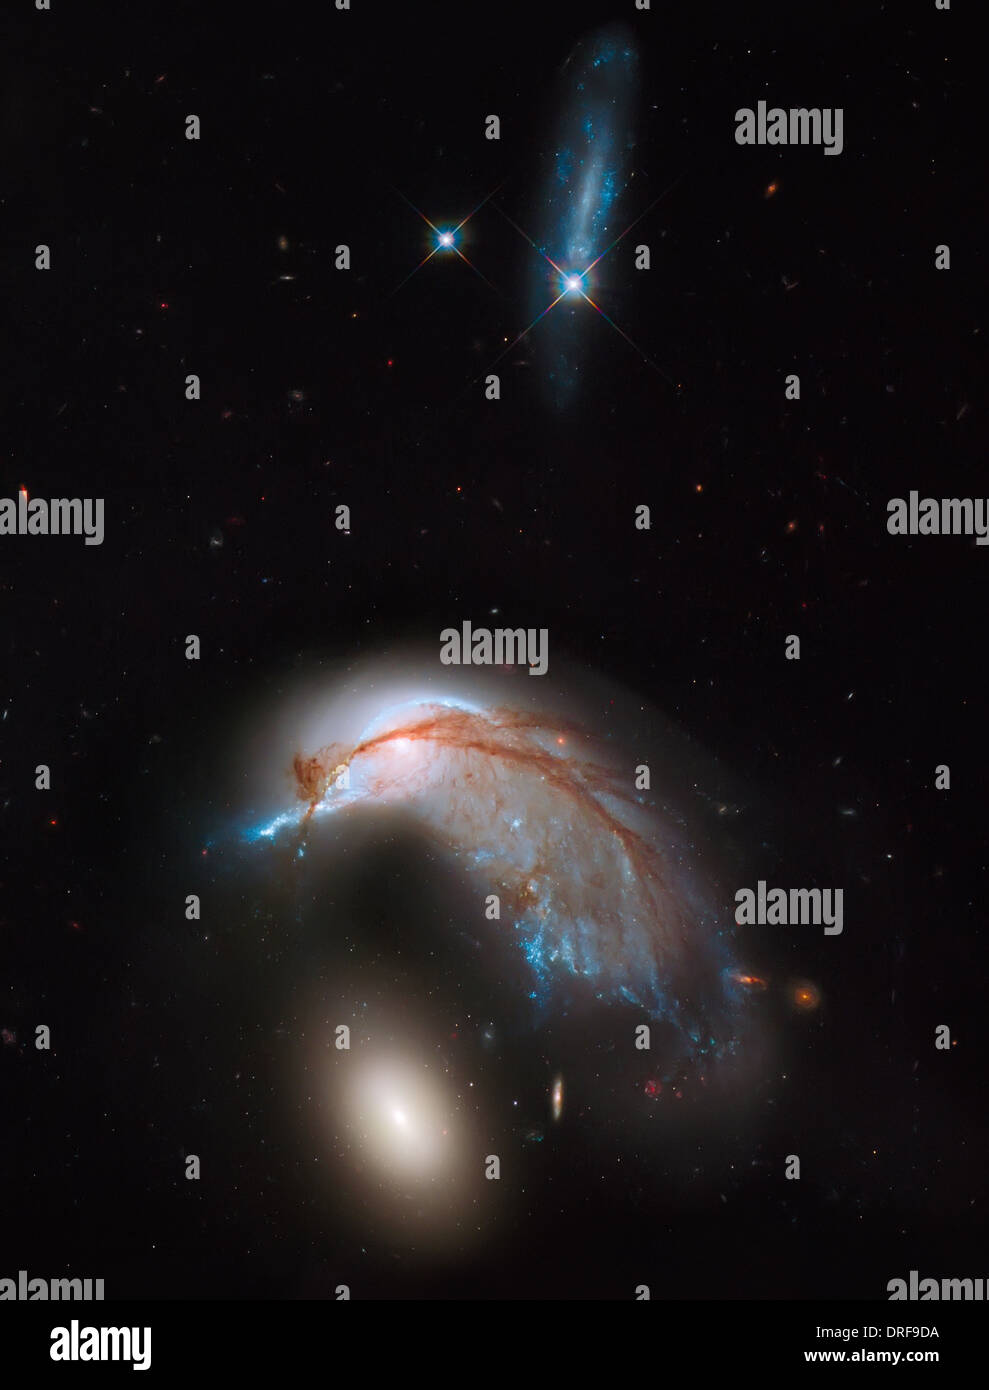 Arp 142 galactic merger, as shown in a photo from  Hubble Space Telescope. - Stock Image